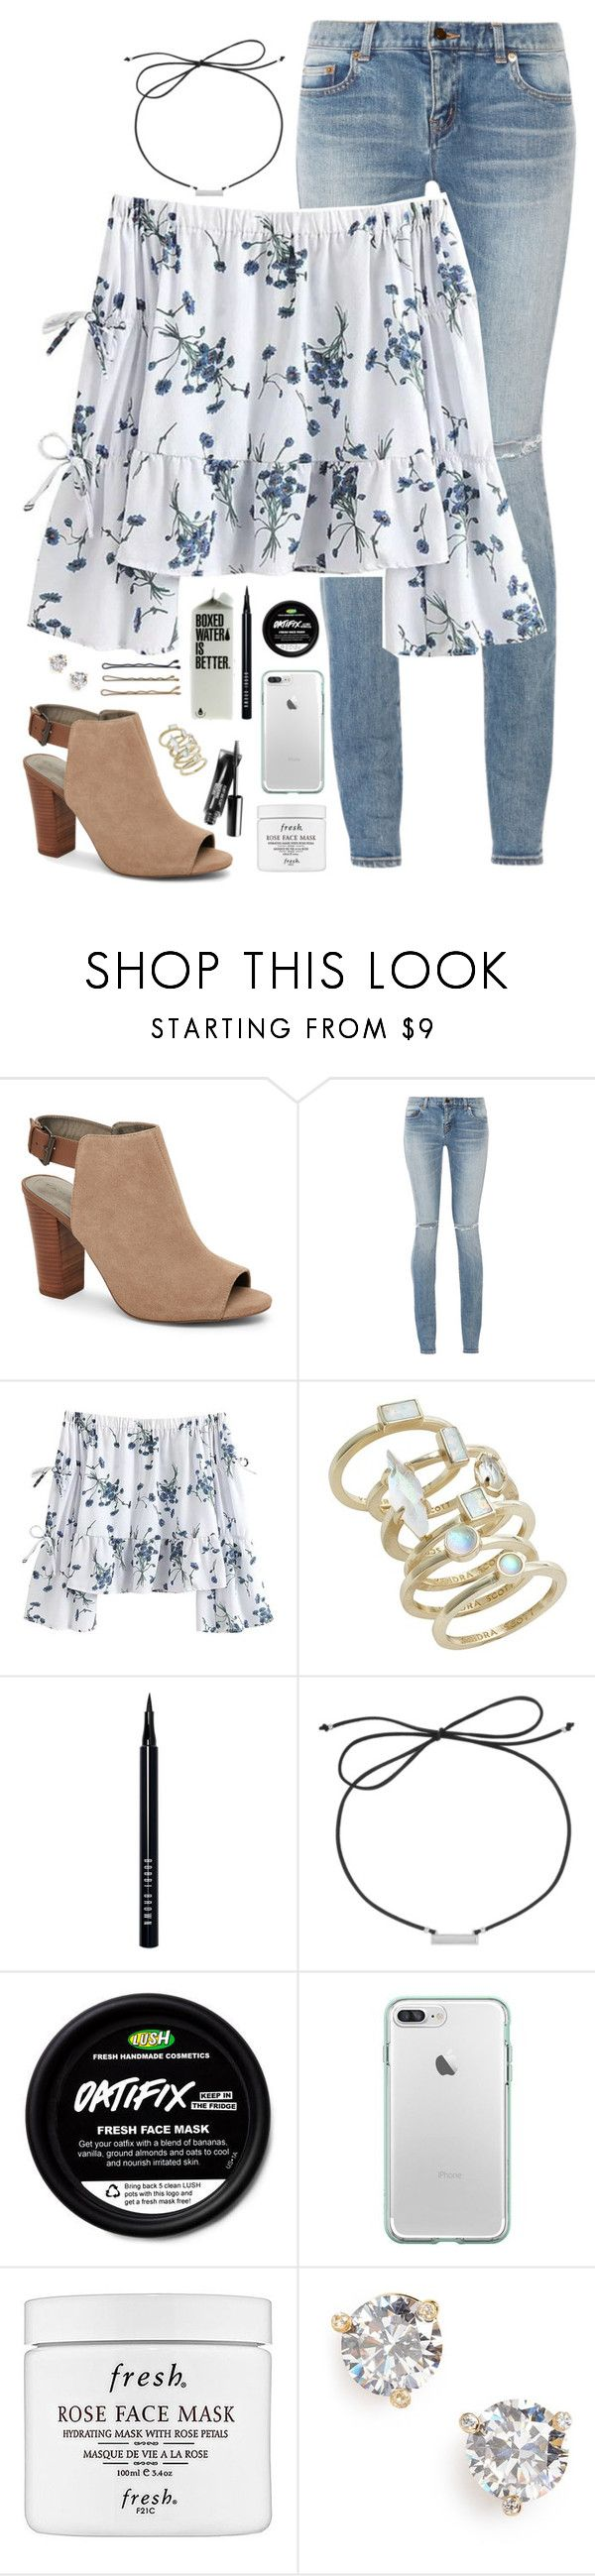 """trying out a new style?"" by simplysarahkate ❤ liked on Polyvore featuring Tahari, Yves Saint Laurent, Kendra Scott, Bobbi Brown Cosmetics, Laundry by Shelli Segal, Guide London, Fresh and Kate Spade"